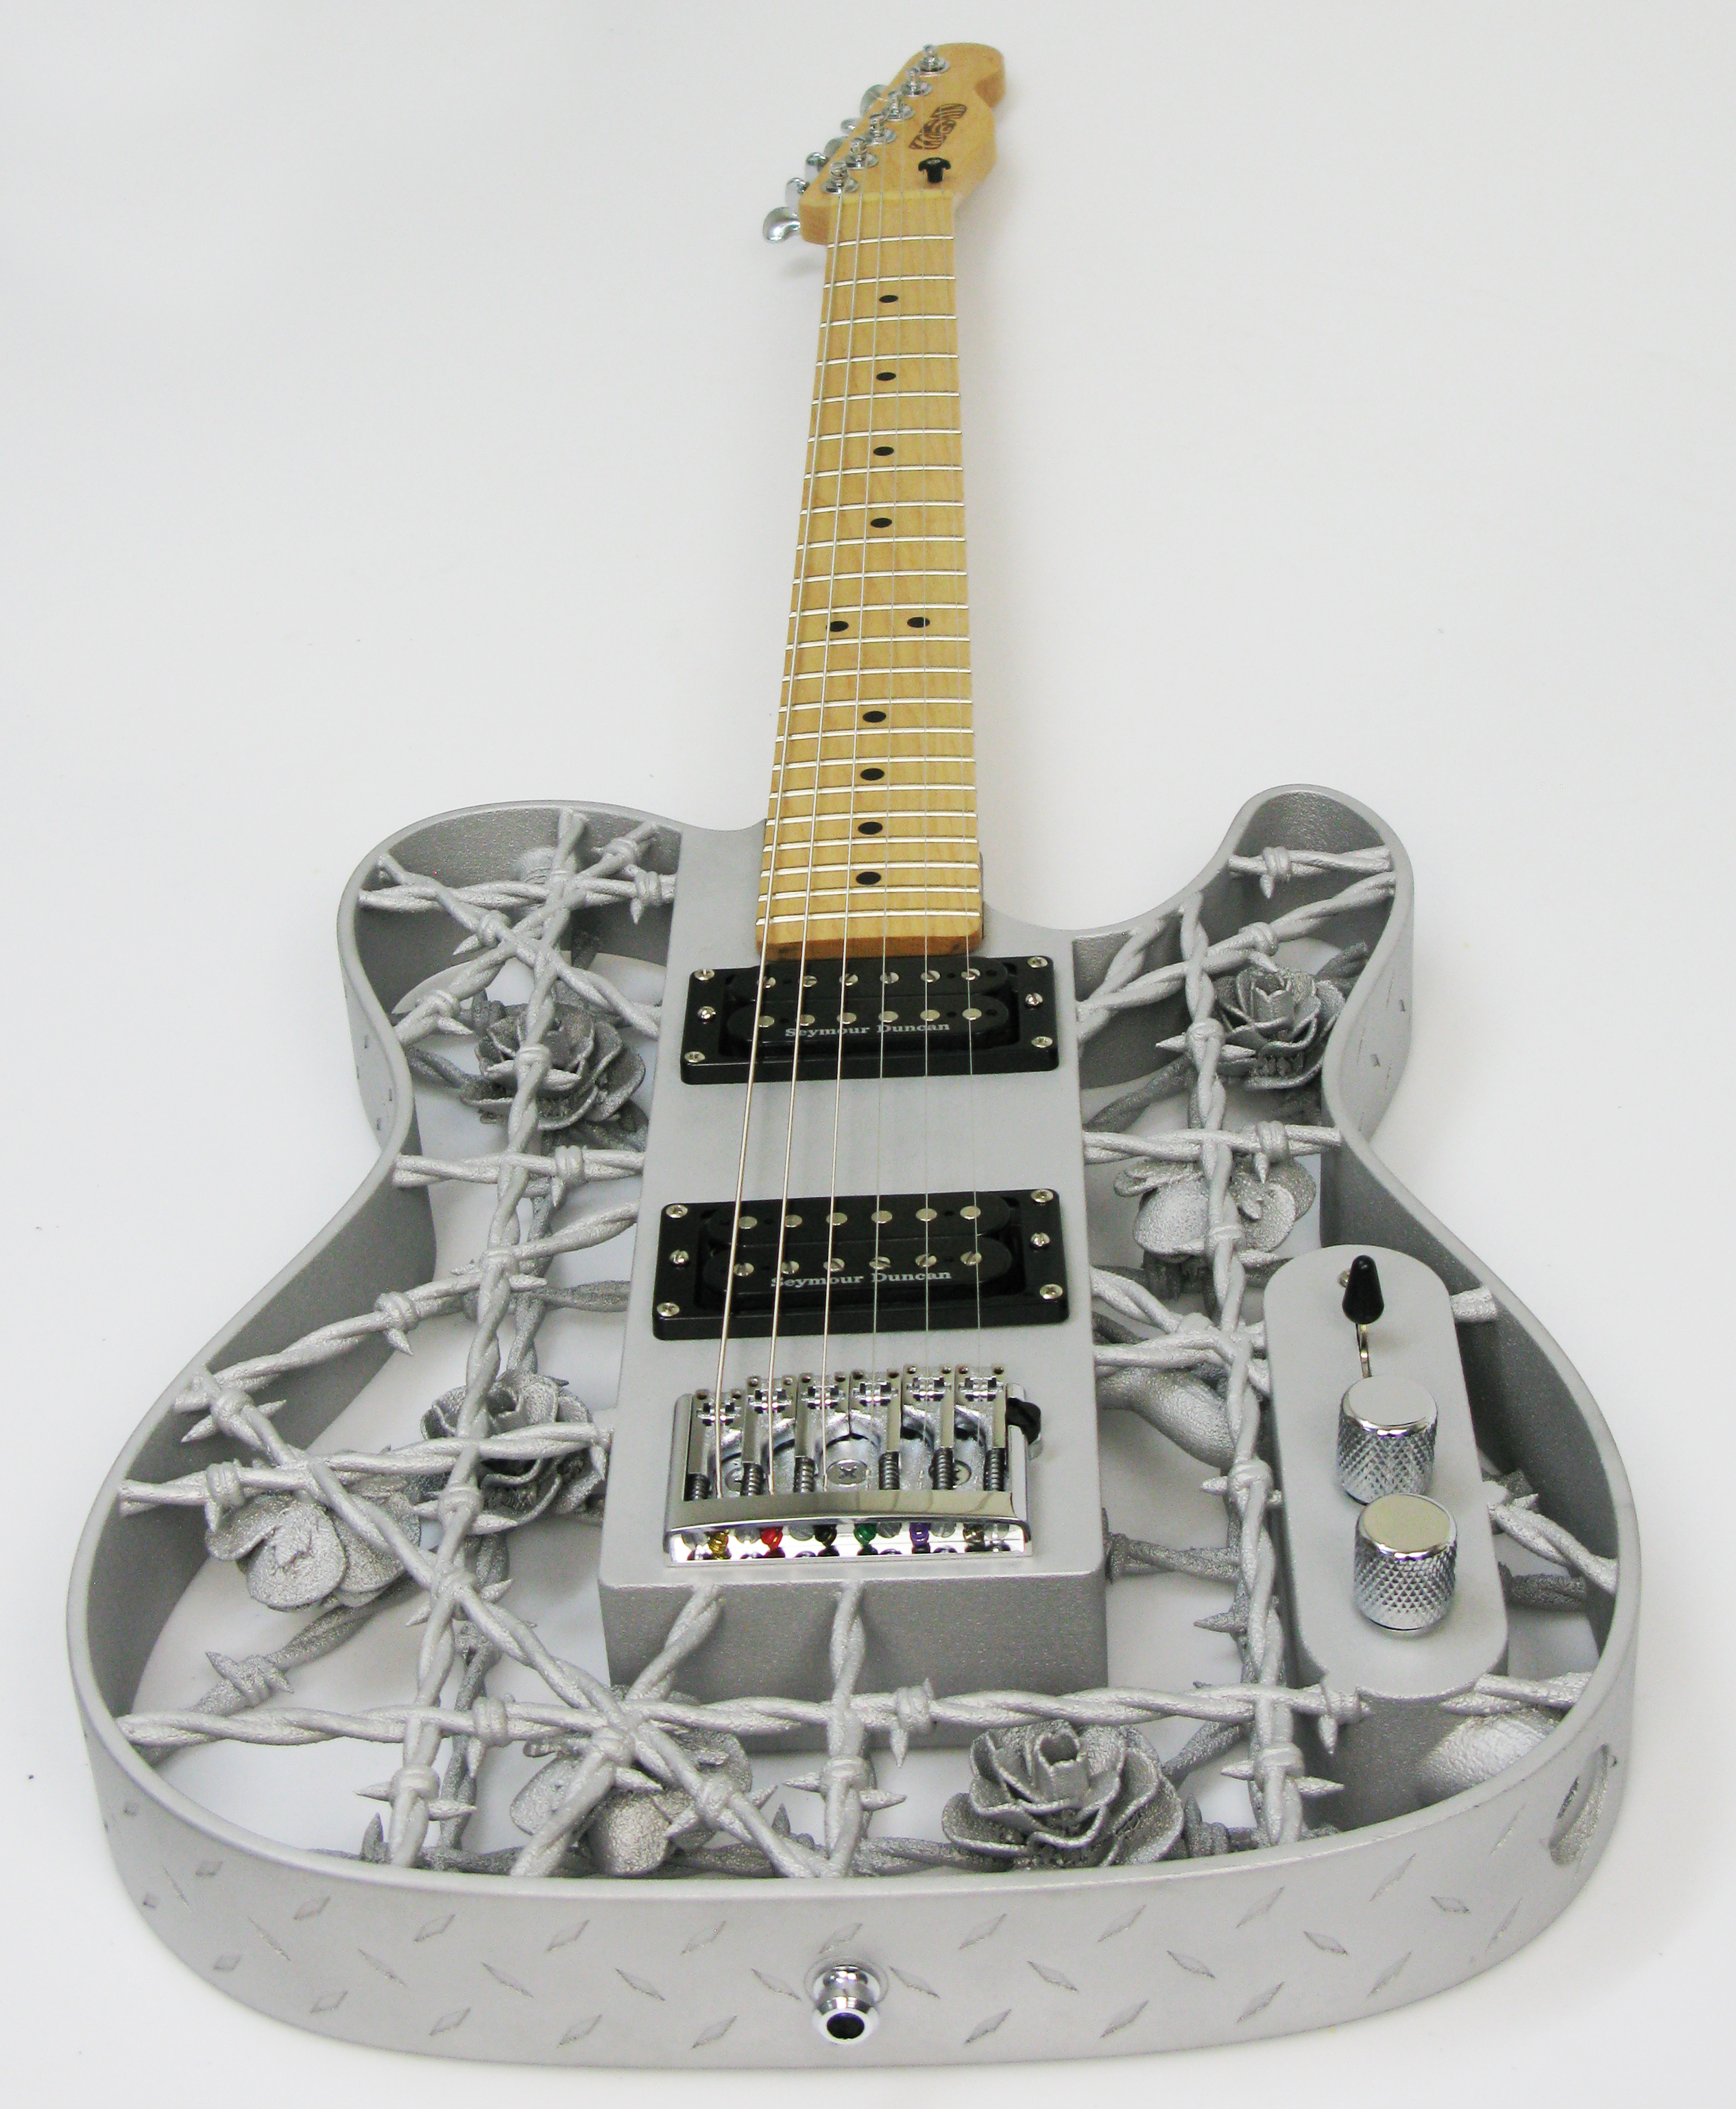 The World's First 3D Printed Aluminium Guitar!